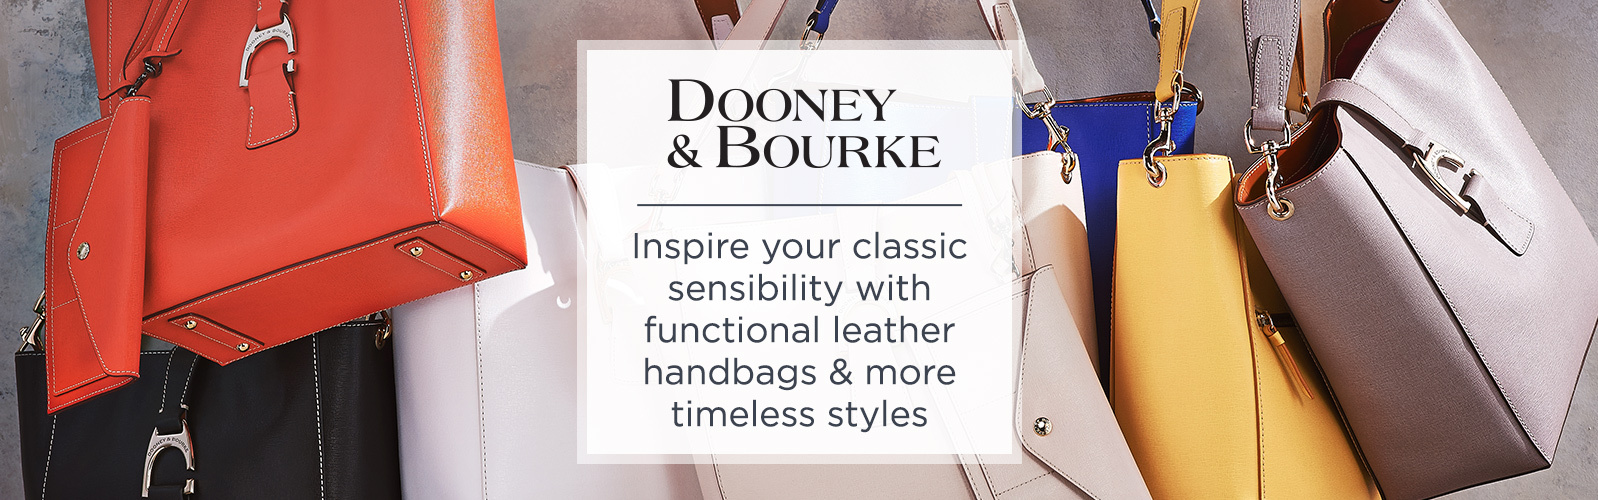 Dooney Bourke Inspire Your Classic Sensibility With Functional Leather Handbags More Timeless